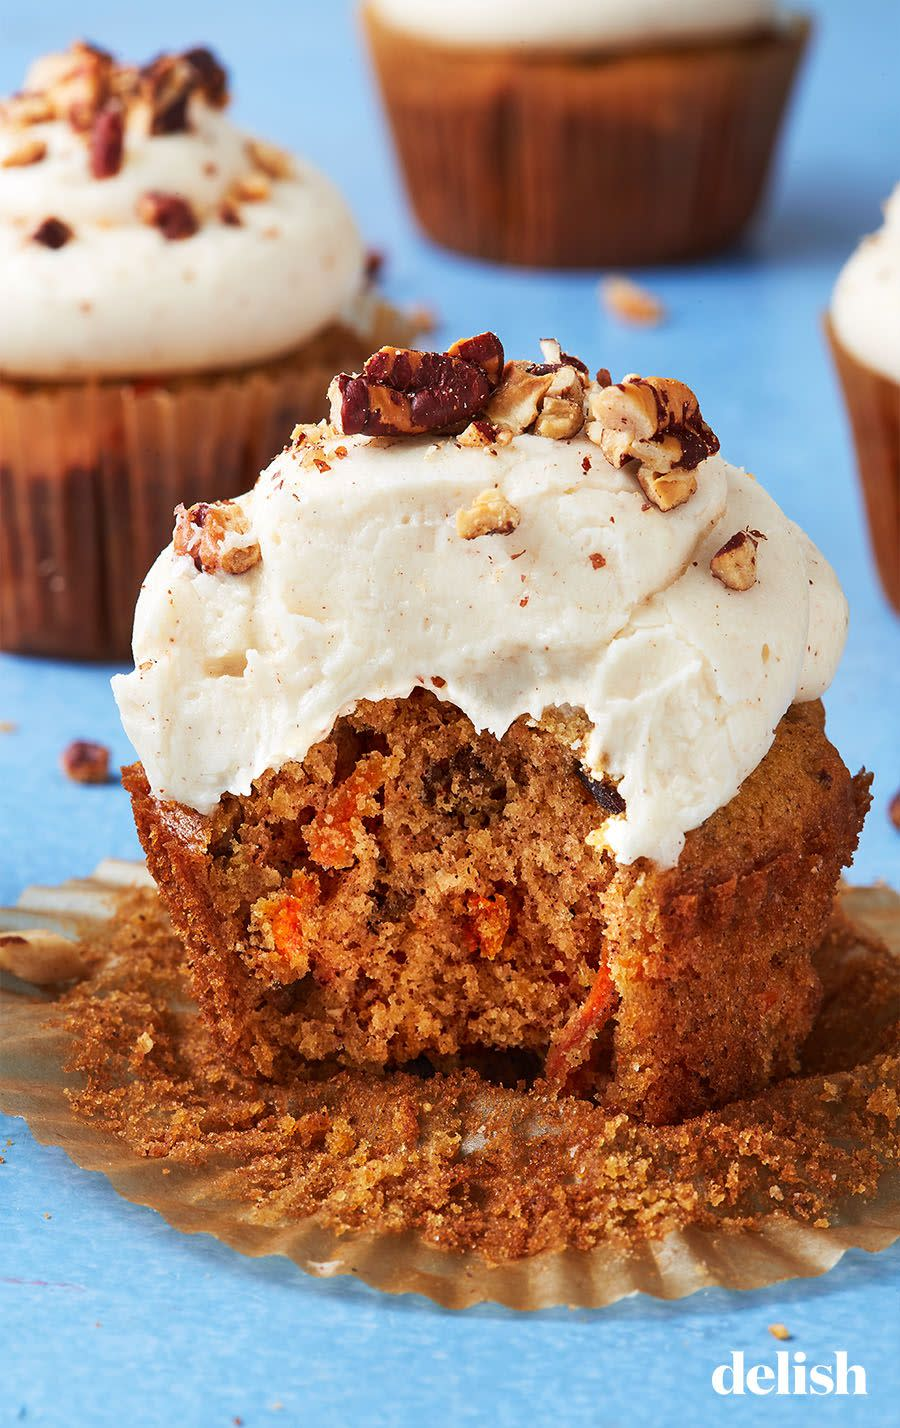 """<p>The cream cheese frosting will knock her socks off. </p><p>Get the recipe from <a href=""""https://www.delish.com/cooking/recipe-ideas/recipes/a43390/carrot-cake-cupcakes-recipe/"""" rel=""""nofollow noopener"""" target=""""_blank"""" data-ylk=""""slk:Delish"""" class=""""link rapid-noclick-resp"""">Delish</a>.<br></p>"""